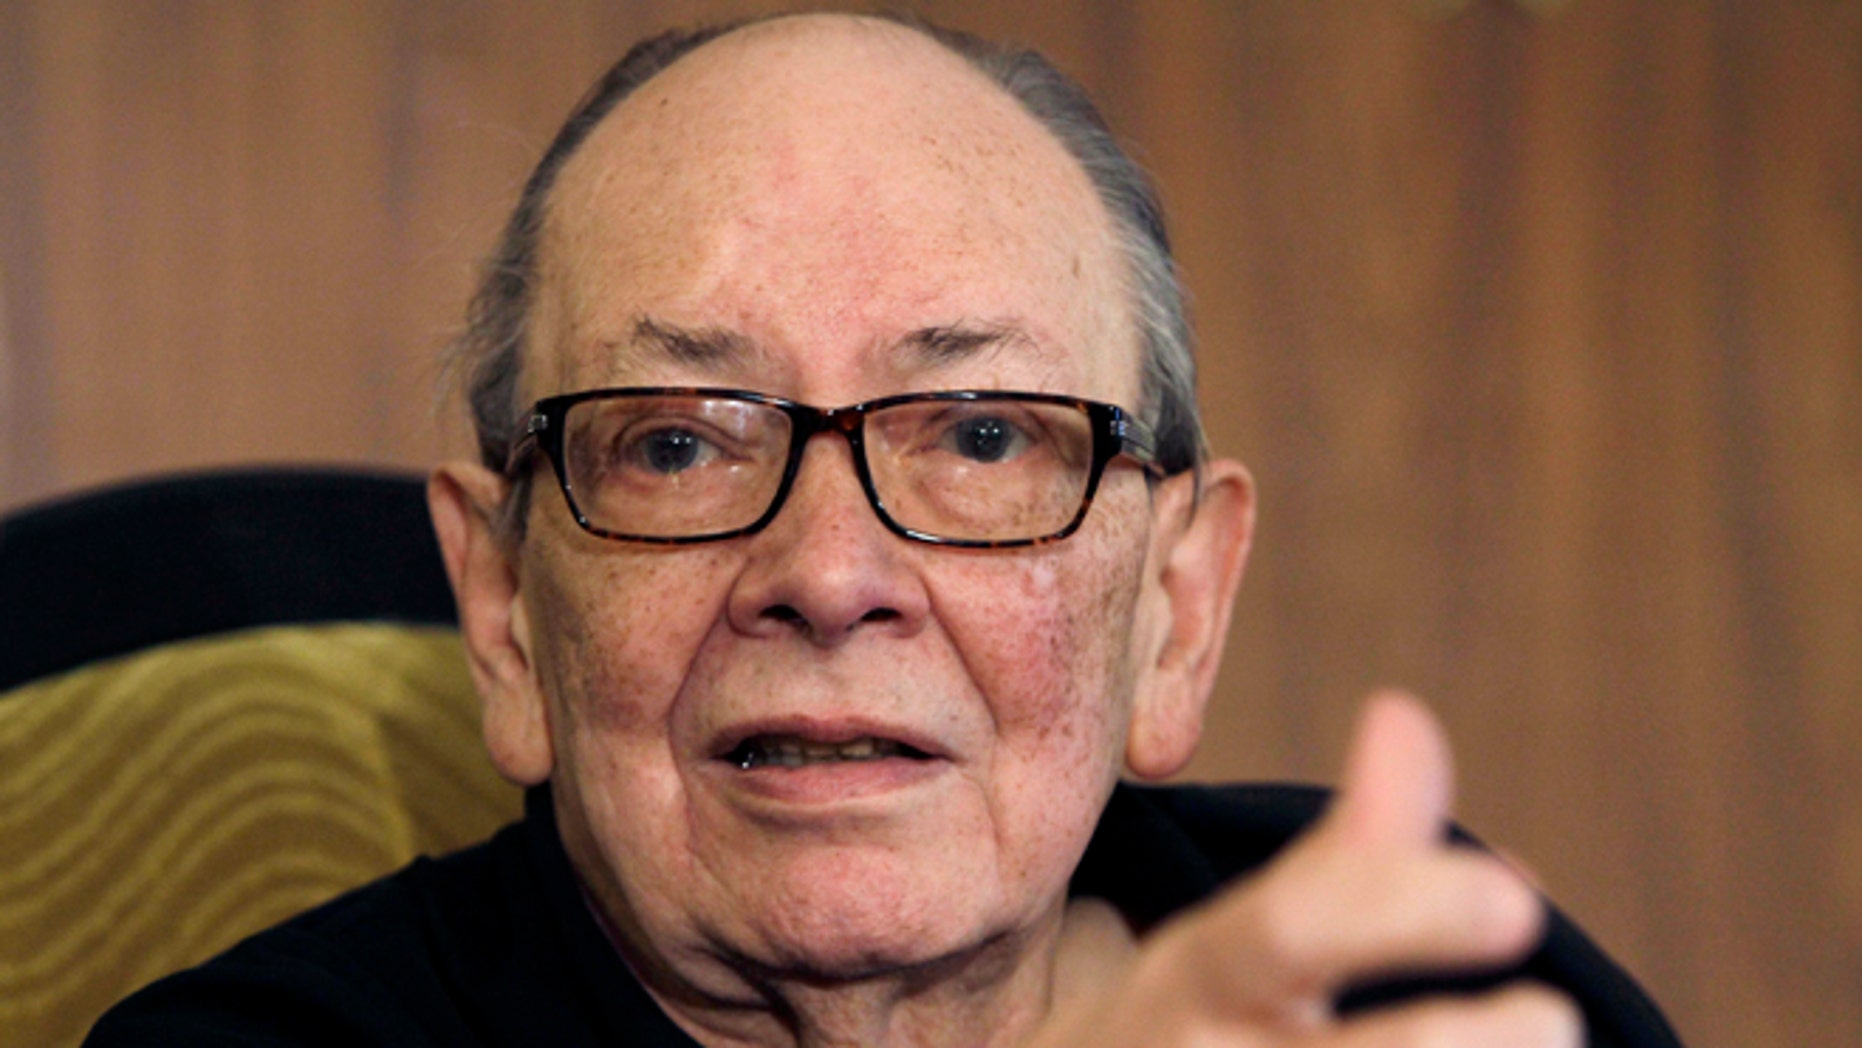 In this photo taken Nov. 13, 2012, Alfredo Guevara, president of the International Festival of New Latin American Cinema, speaks during a press conference in Havana, Cuba. The filmmaker, who was recognized as one of Cuba's main cultural leaders, died Friday morning, April 19, 2013. He was 87. (AP Photo/Franklin Reyes)